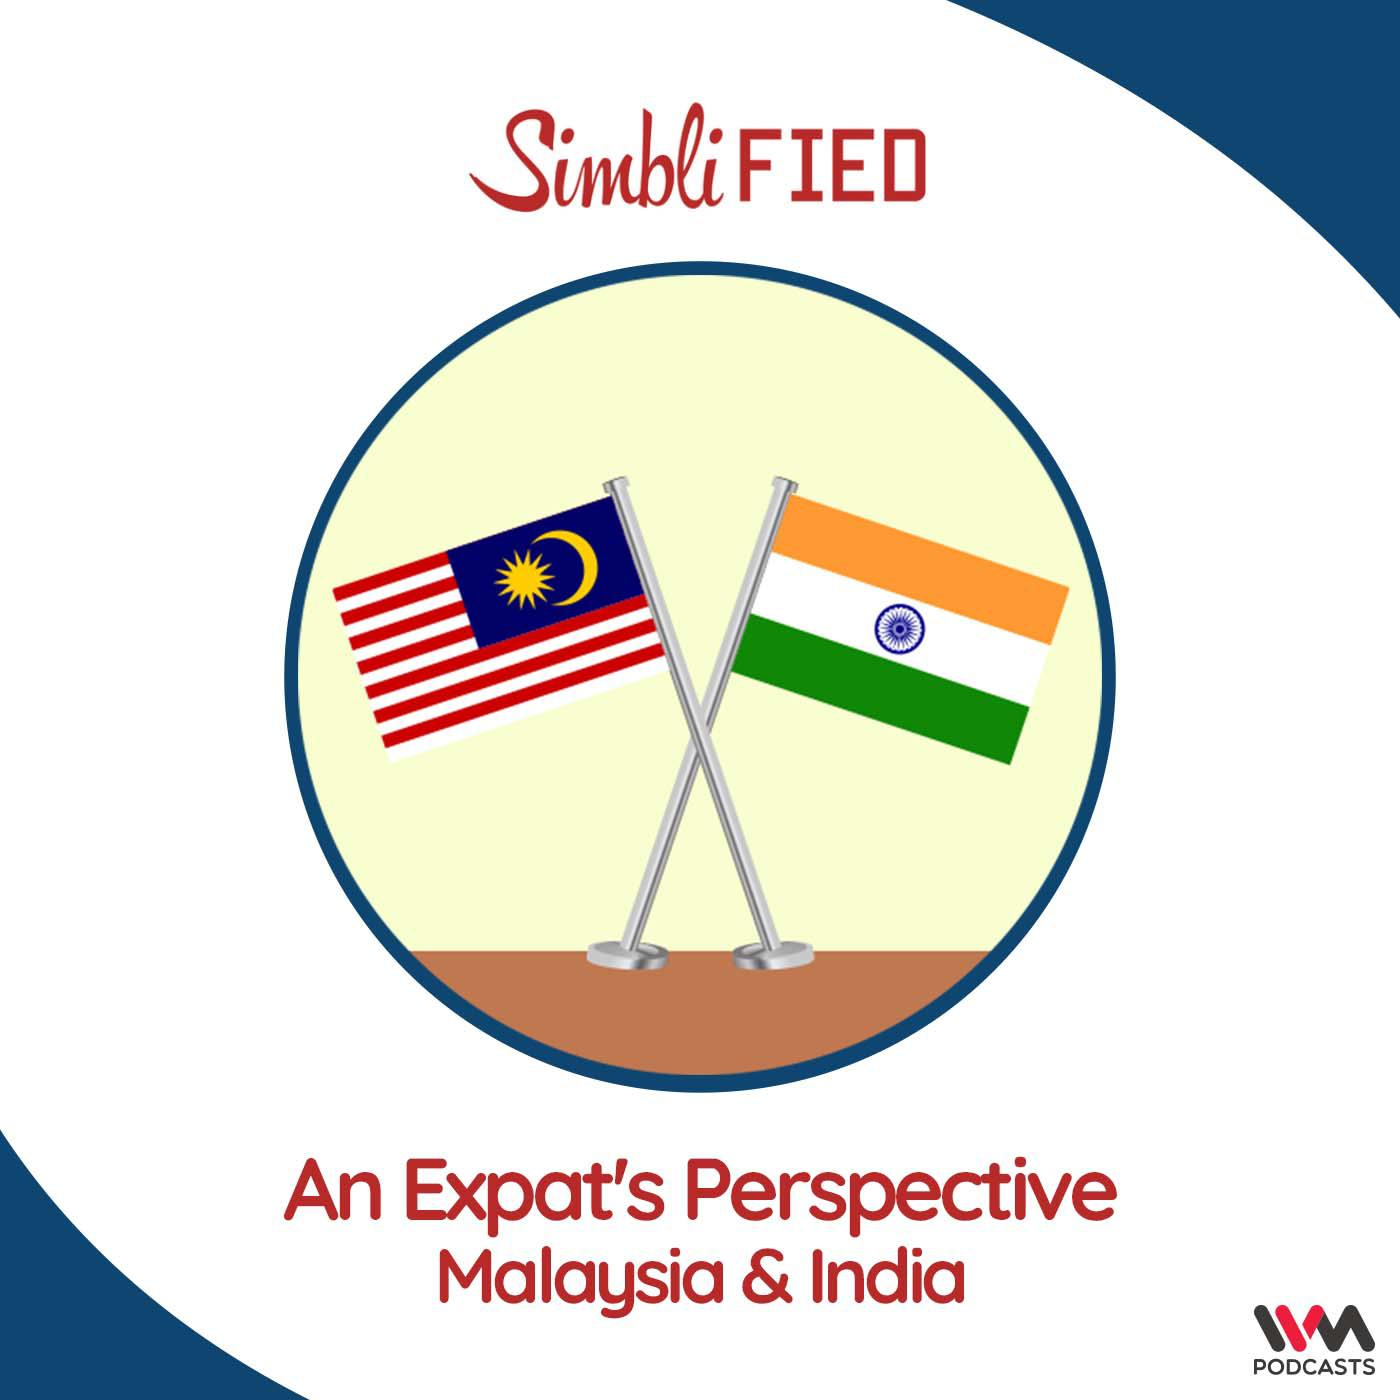 An Expat's Perspective: Malaysia & India